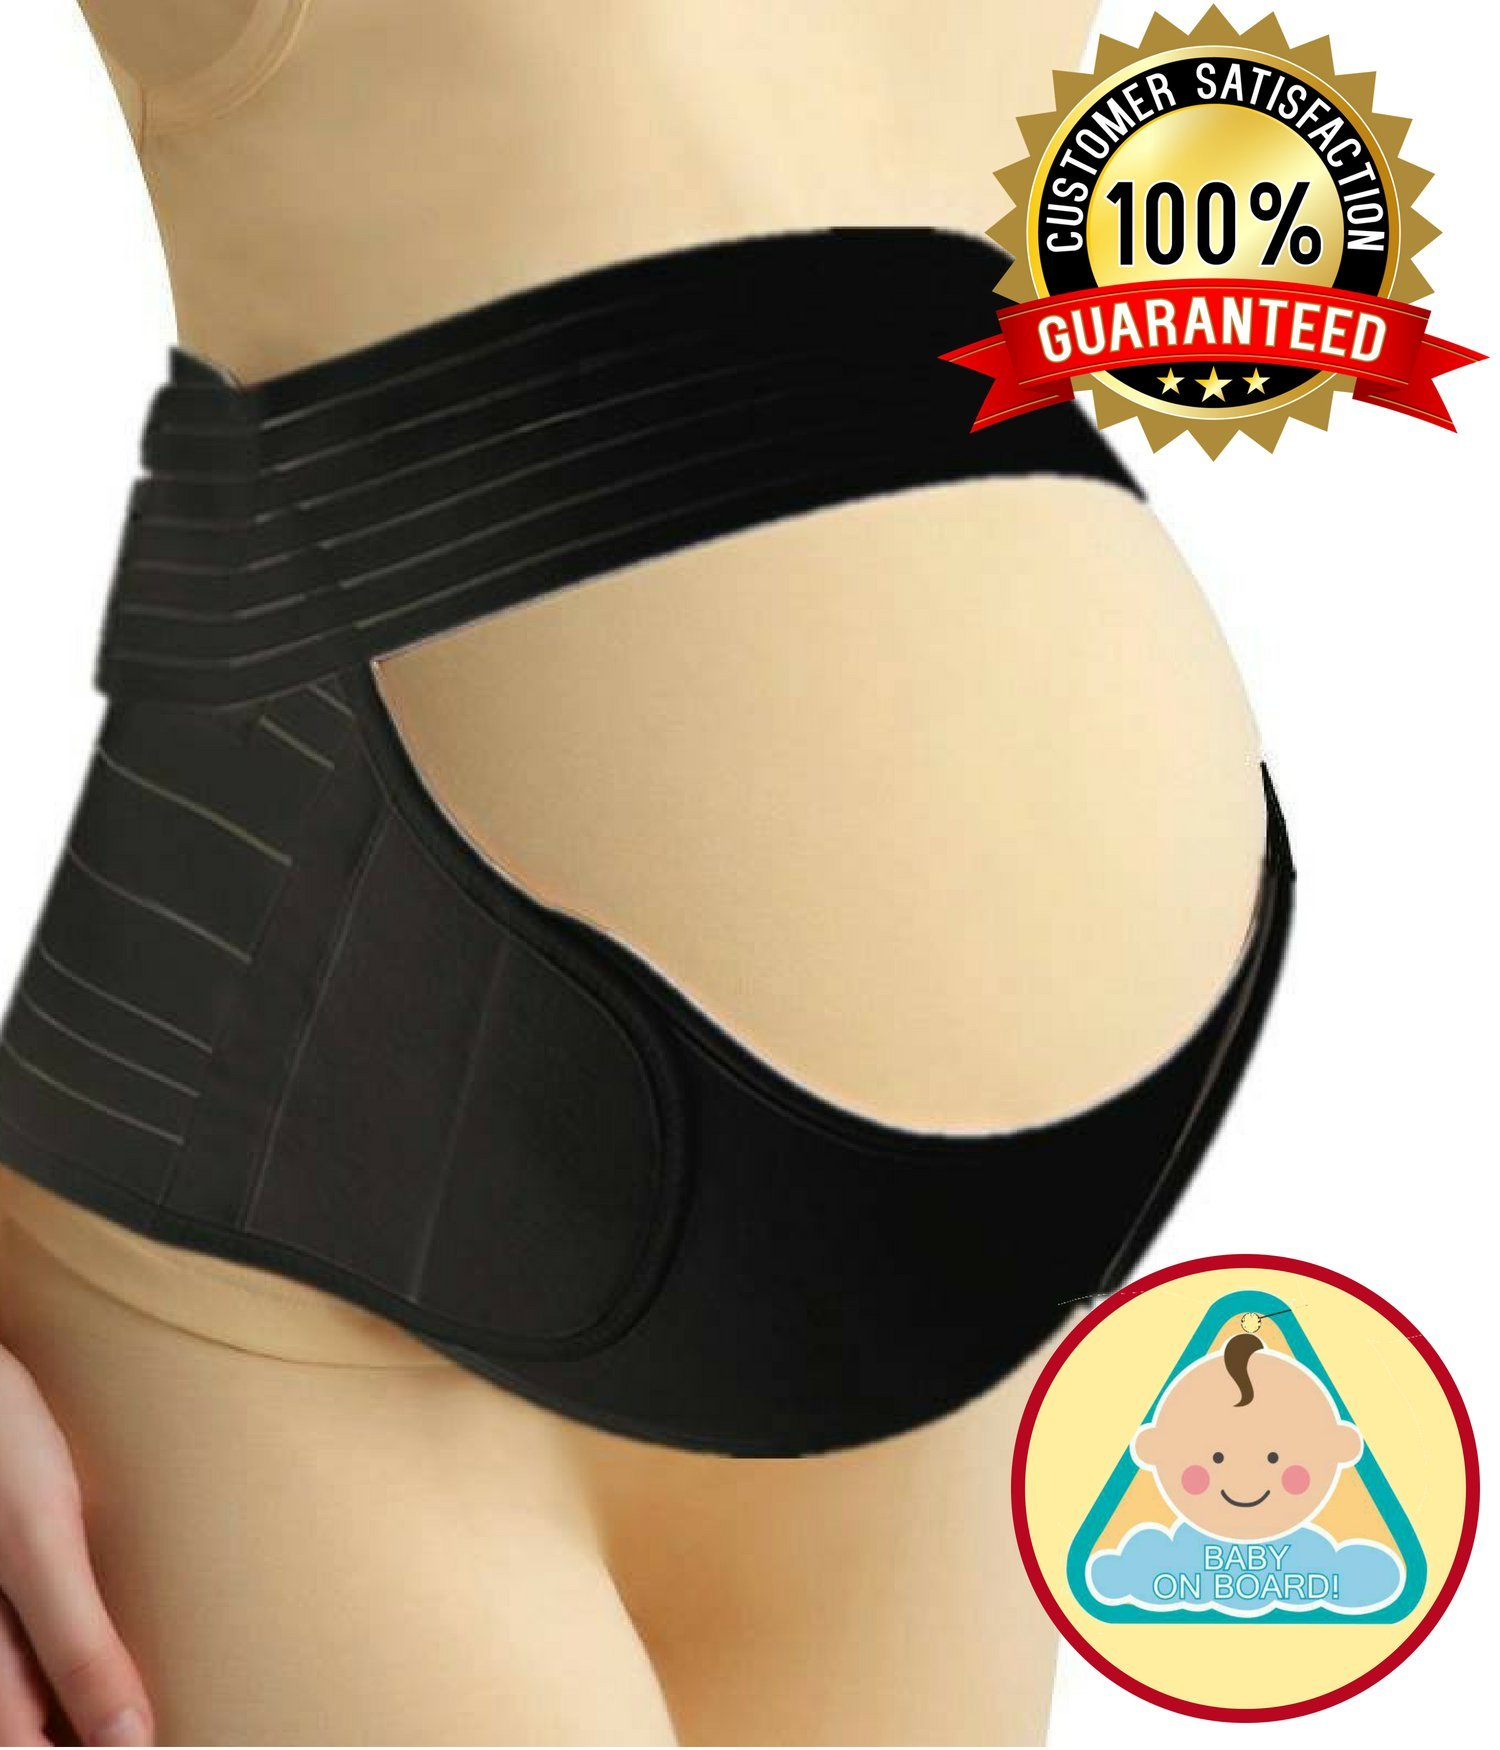 Maternity Belt (Up to 56 Inches) for Back, Pelvic, Hip, Abdomen, Sciatica Pain Relief 2nd-3rd Trimester | Adjustable Pregnancy Support Belly Band Baby Bump Brace (Plus Size)